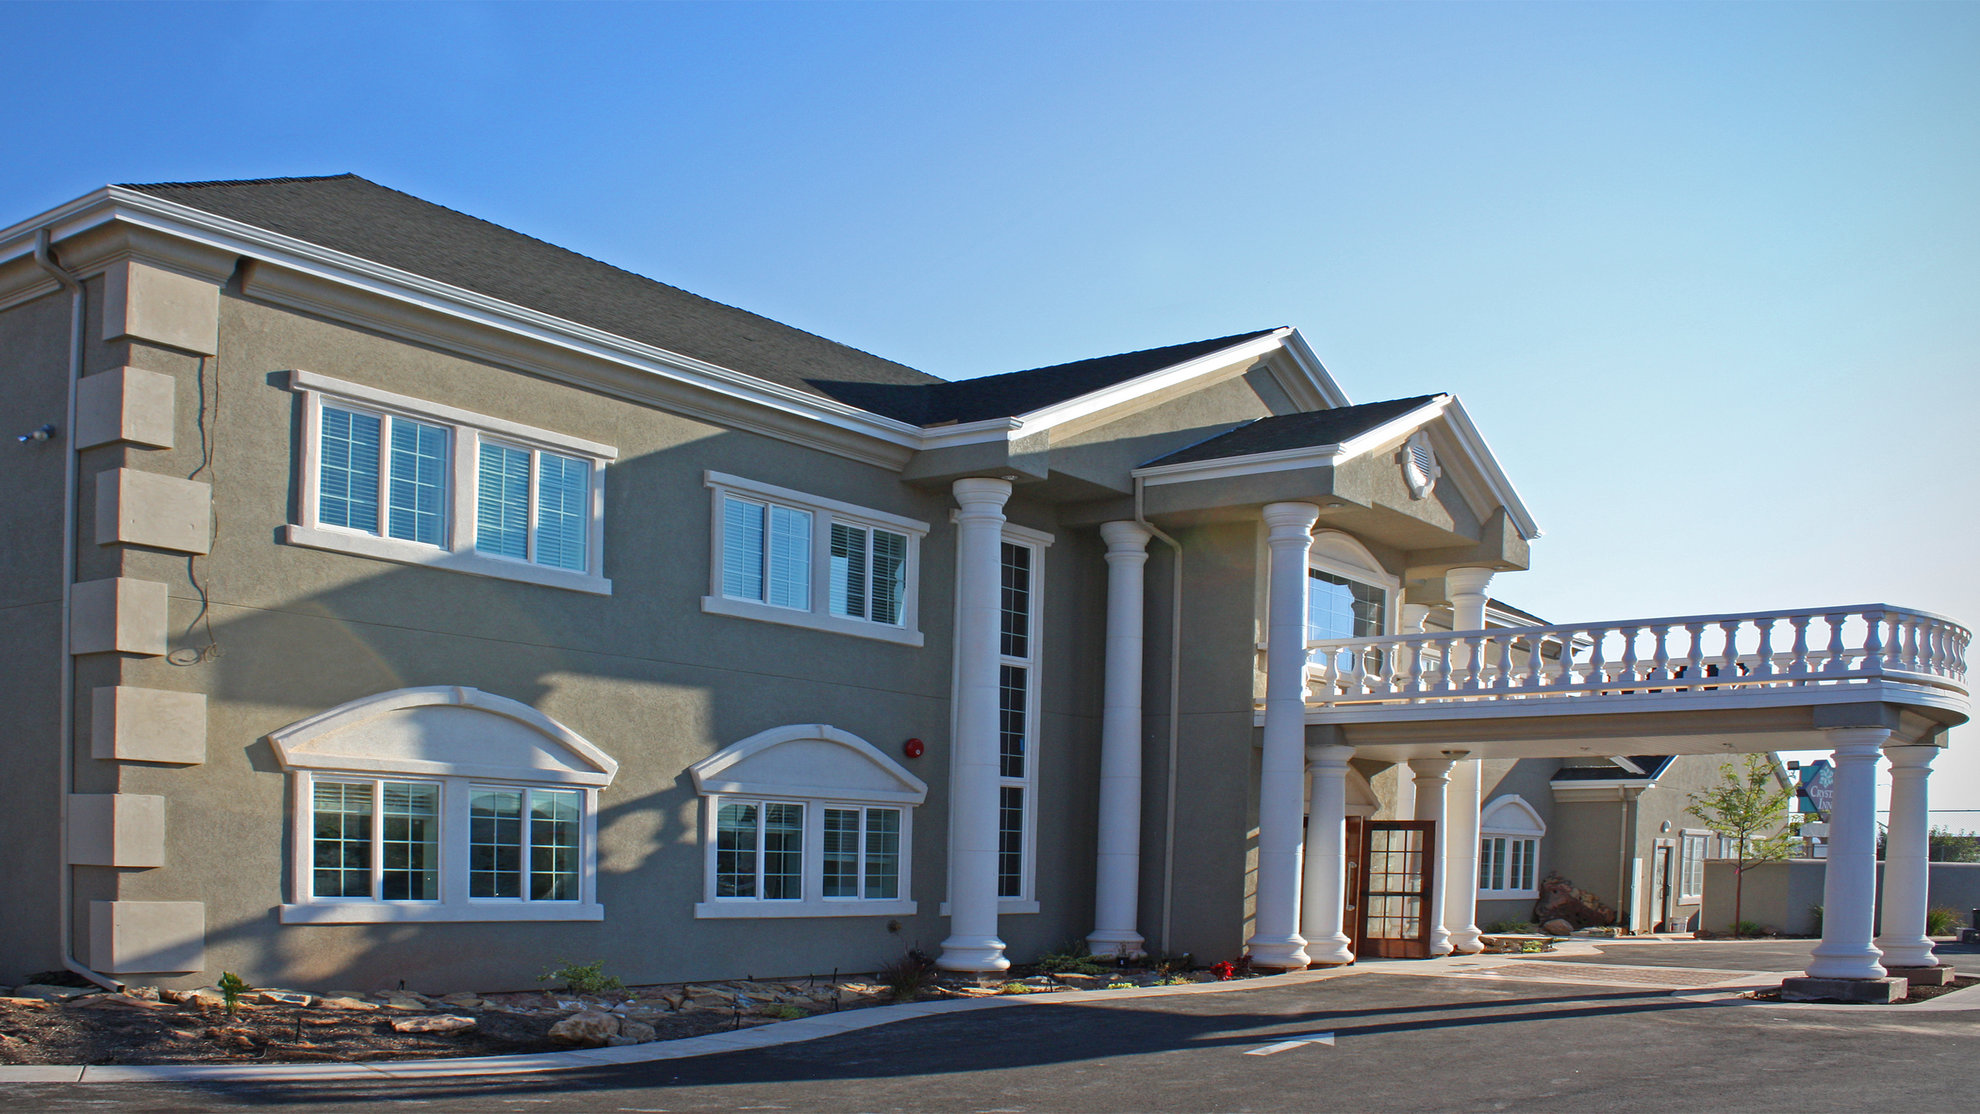 Photo of Therapia Addiction Healing Center